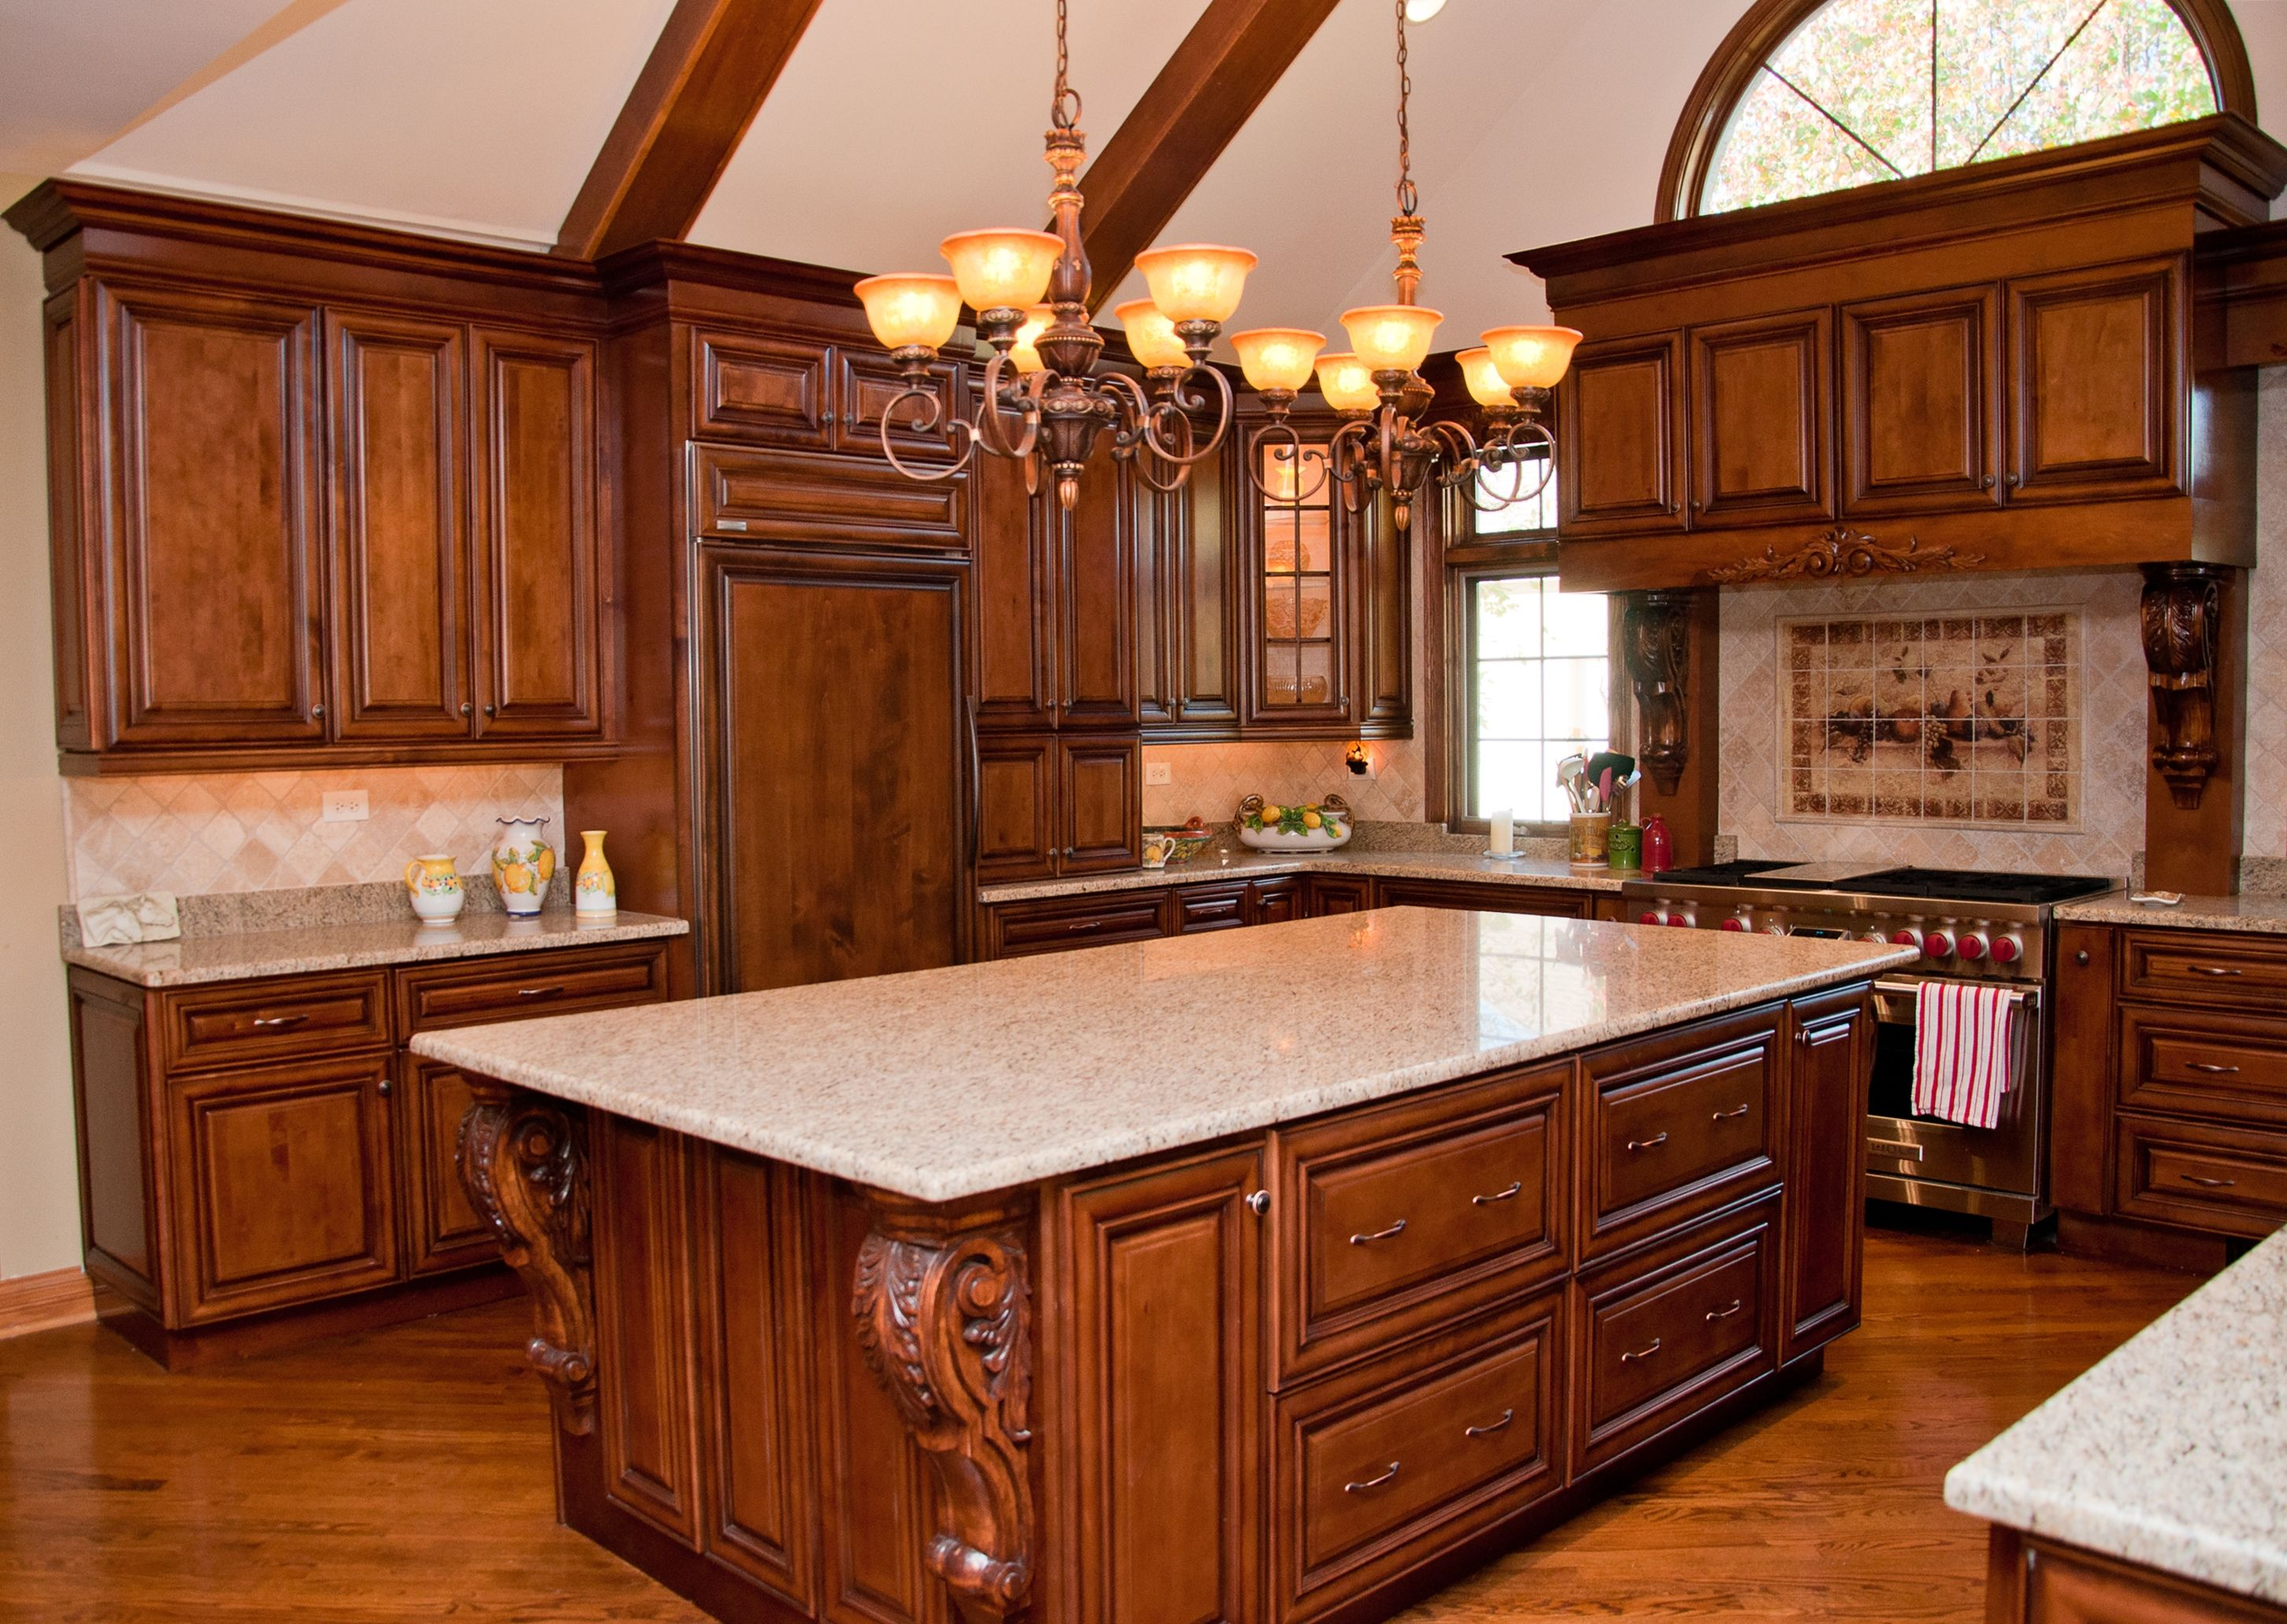 Chicago Il This Kitchen Addition Adds An Old World Flavor To A New Design With Choice Cabinet Cambridge Doo Home Kitchens Kitchen Design Refinishing Cabinets